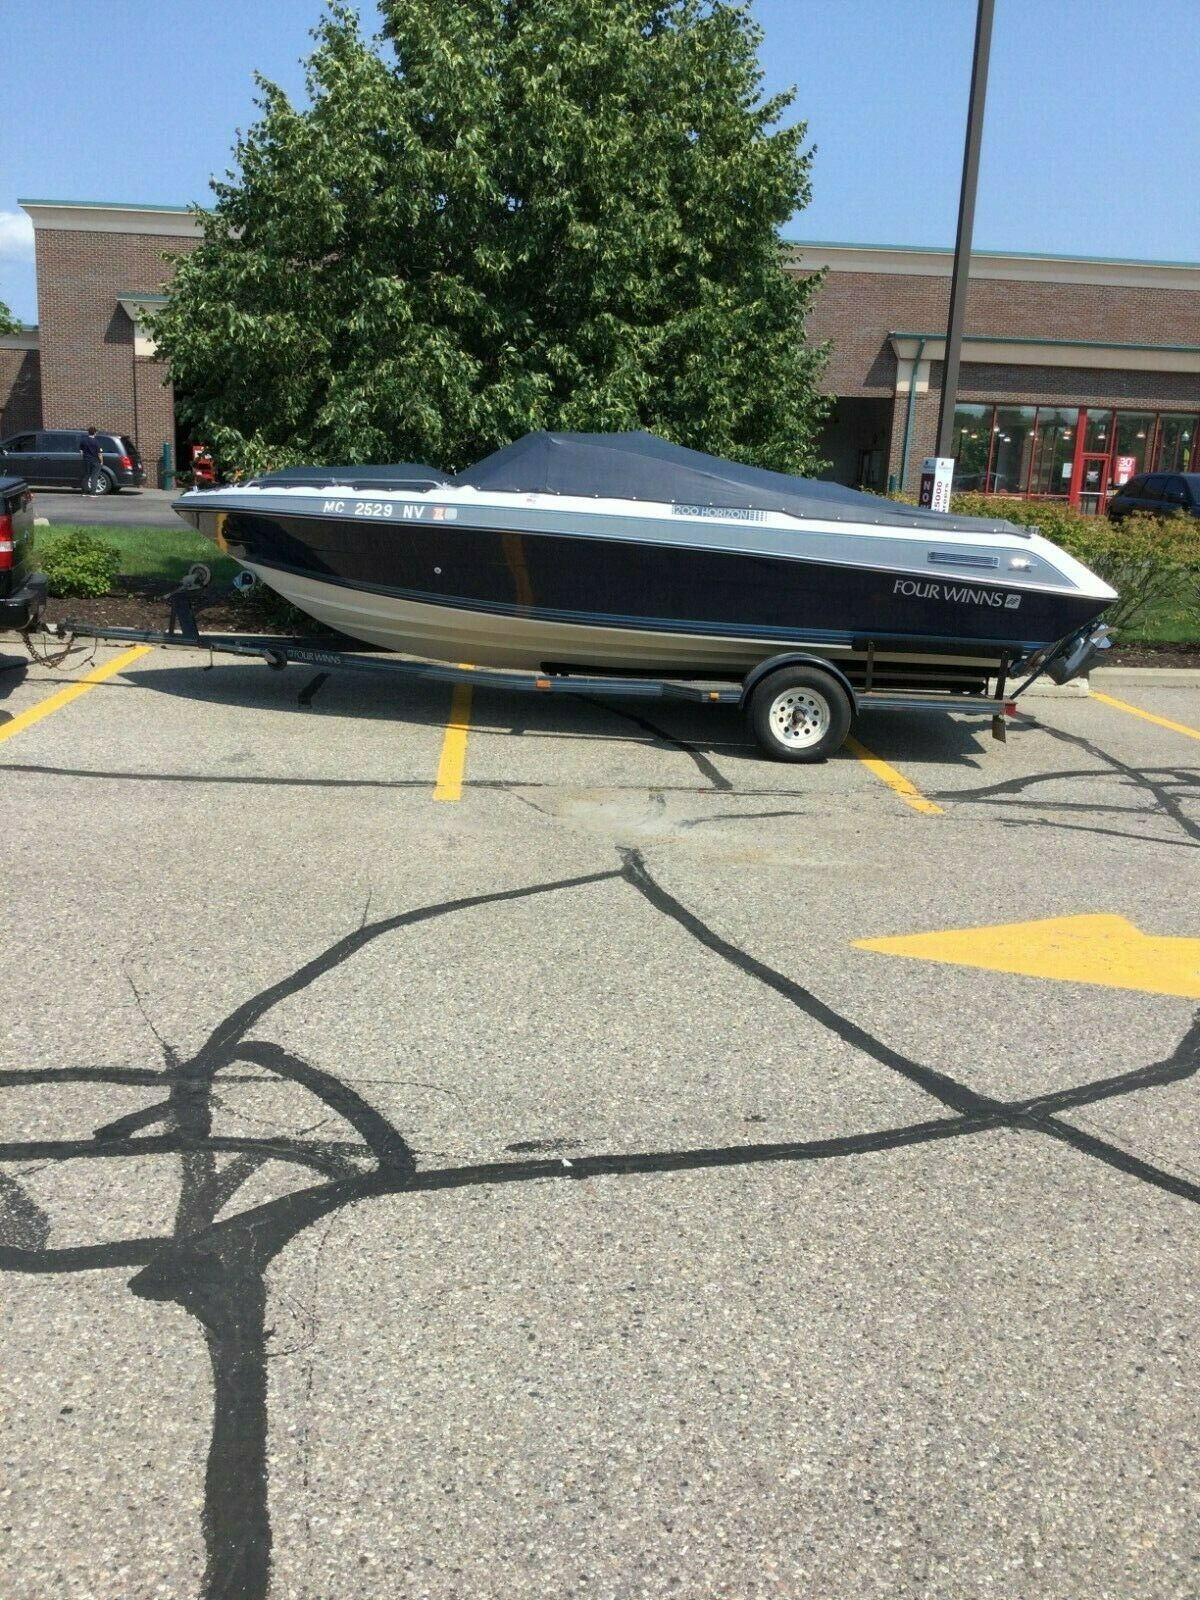 boat1989 Four Winns 200 Horizon bowrider with trailer 20 foot used